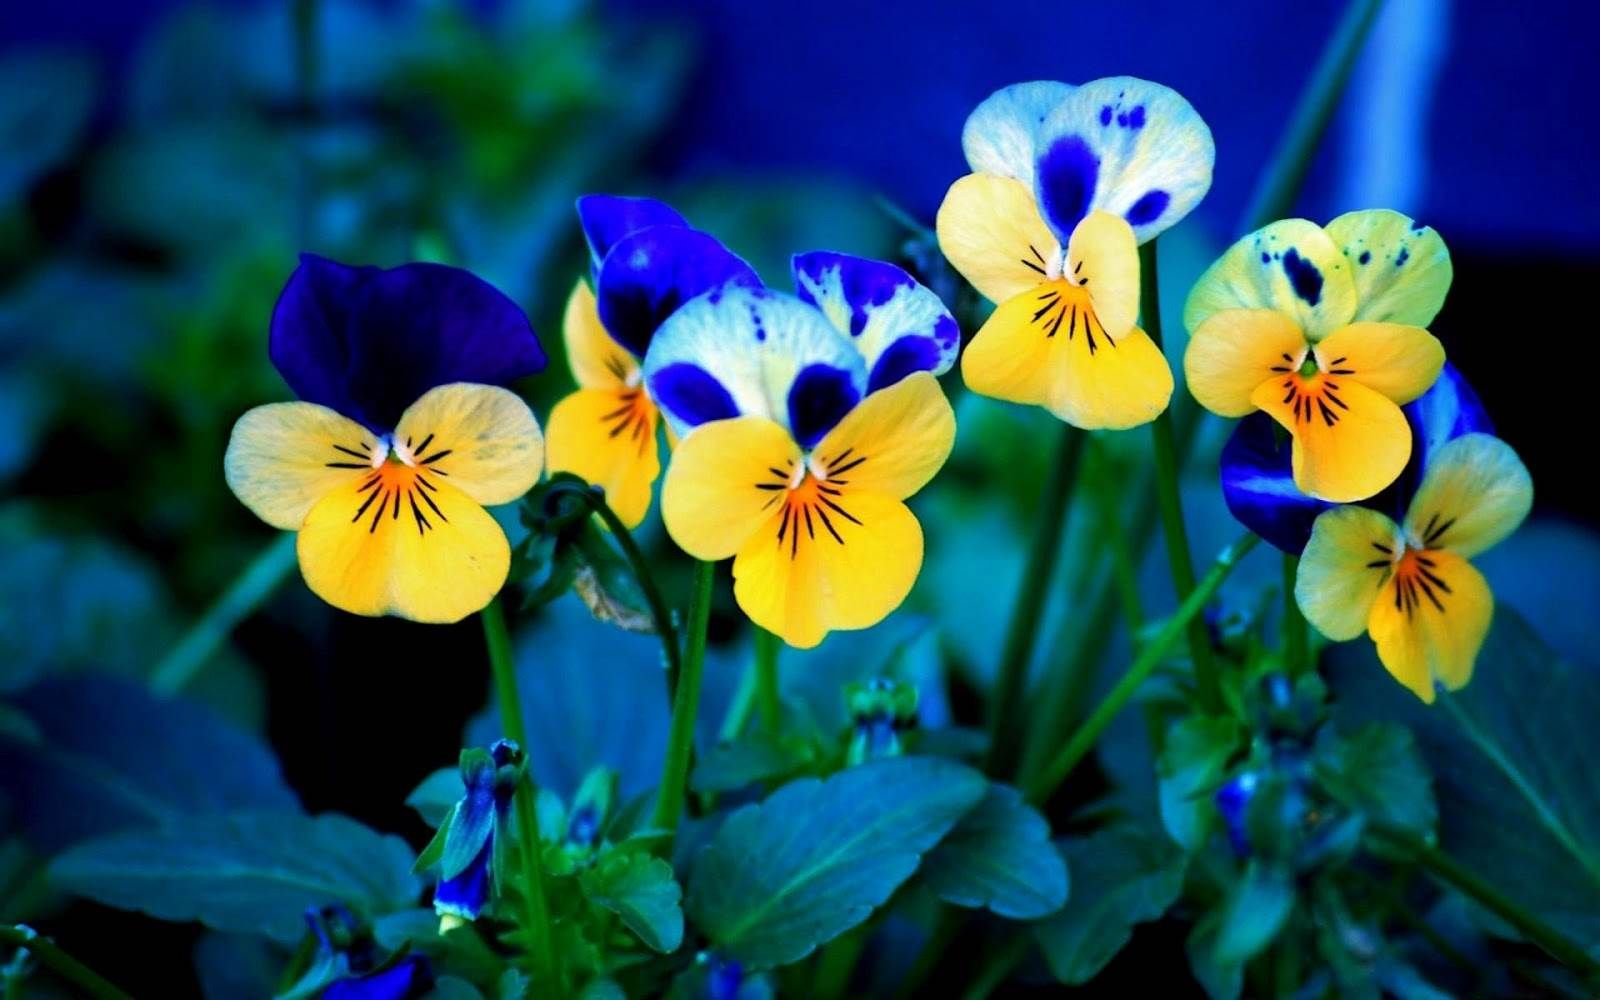 Desktop Wallpapers Hd Free Download 1920 1080 Hc Desktop Wallpapers Free Download Adorable Wallpape Pansies Flowers Flower Wallpaper Spring Flowers Wallpaper